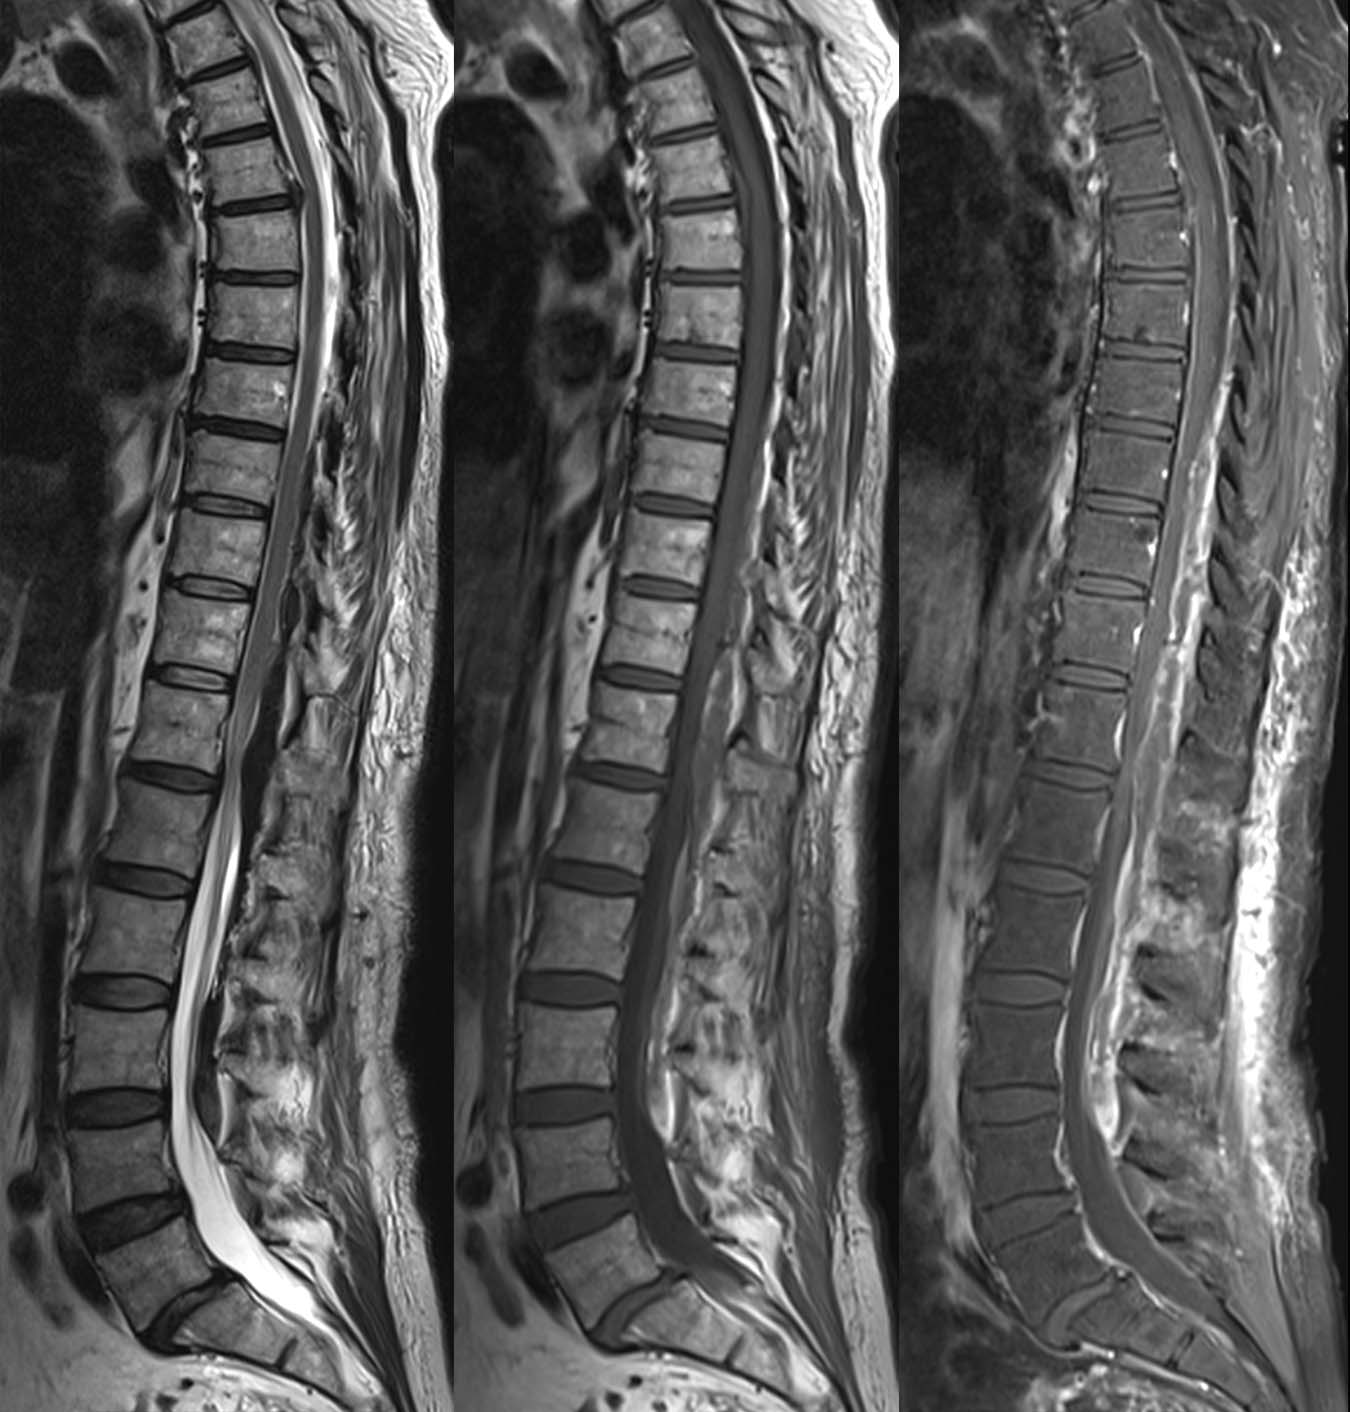 Epidural hematoma, spine, illustrating image composition — Clinical MRI